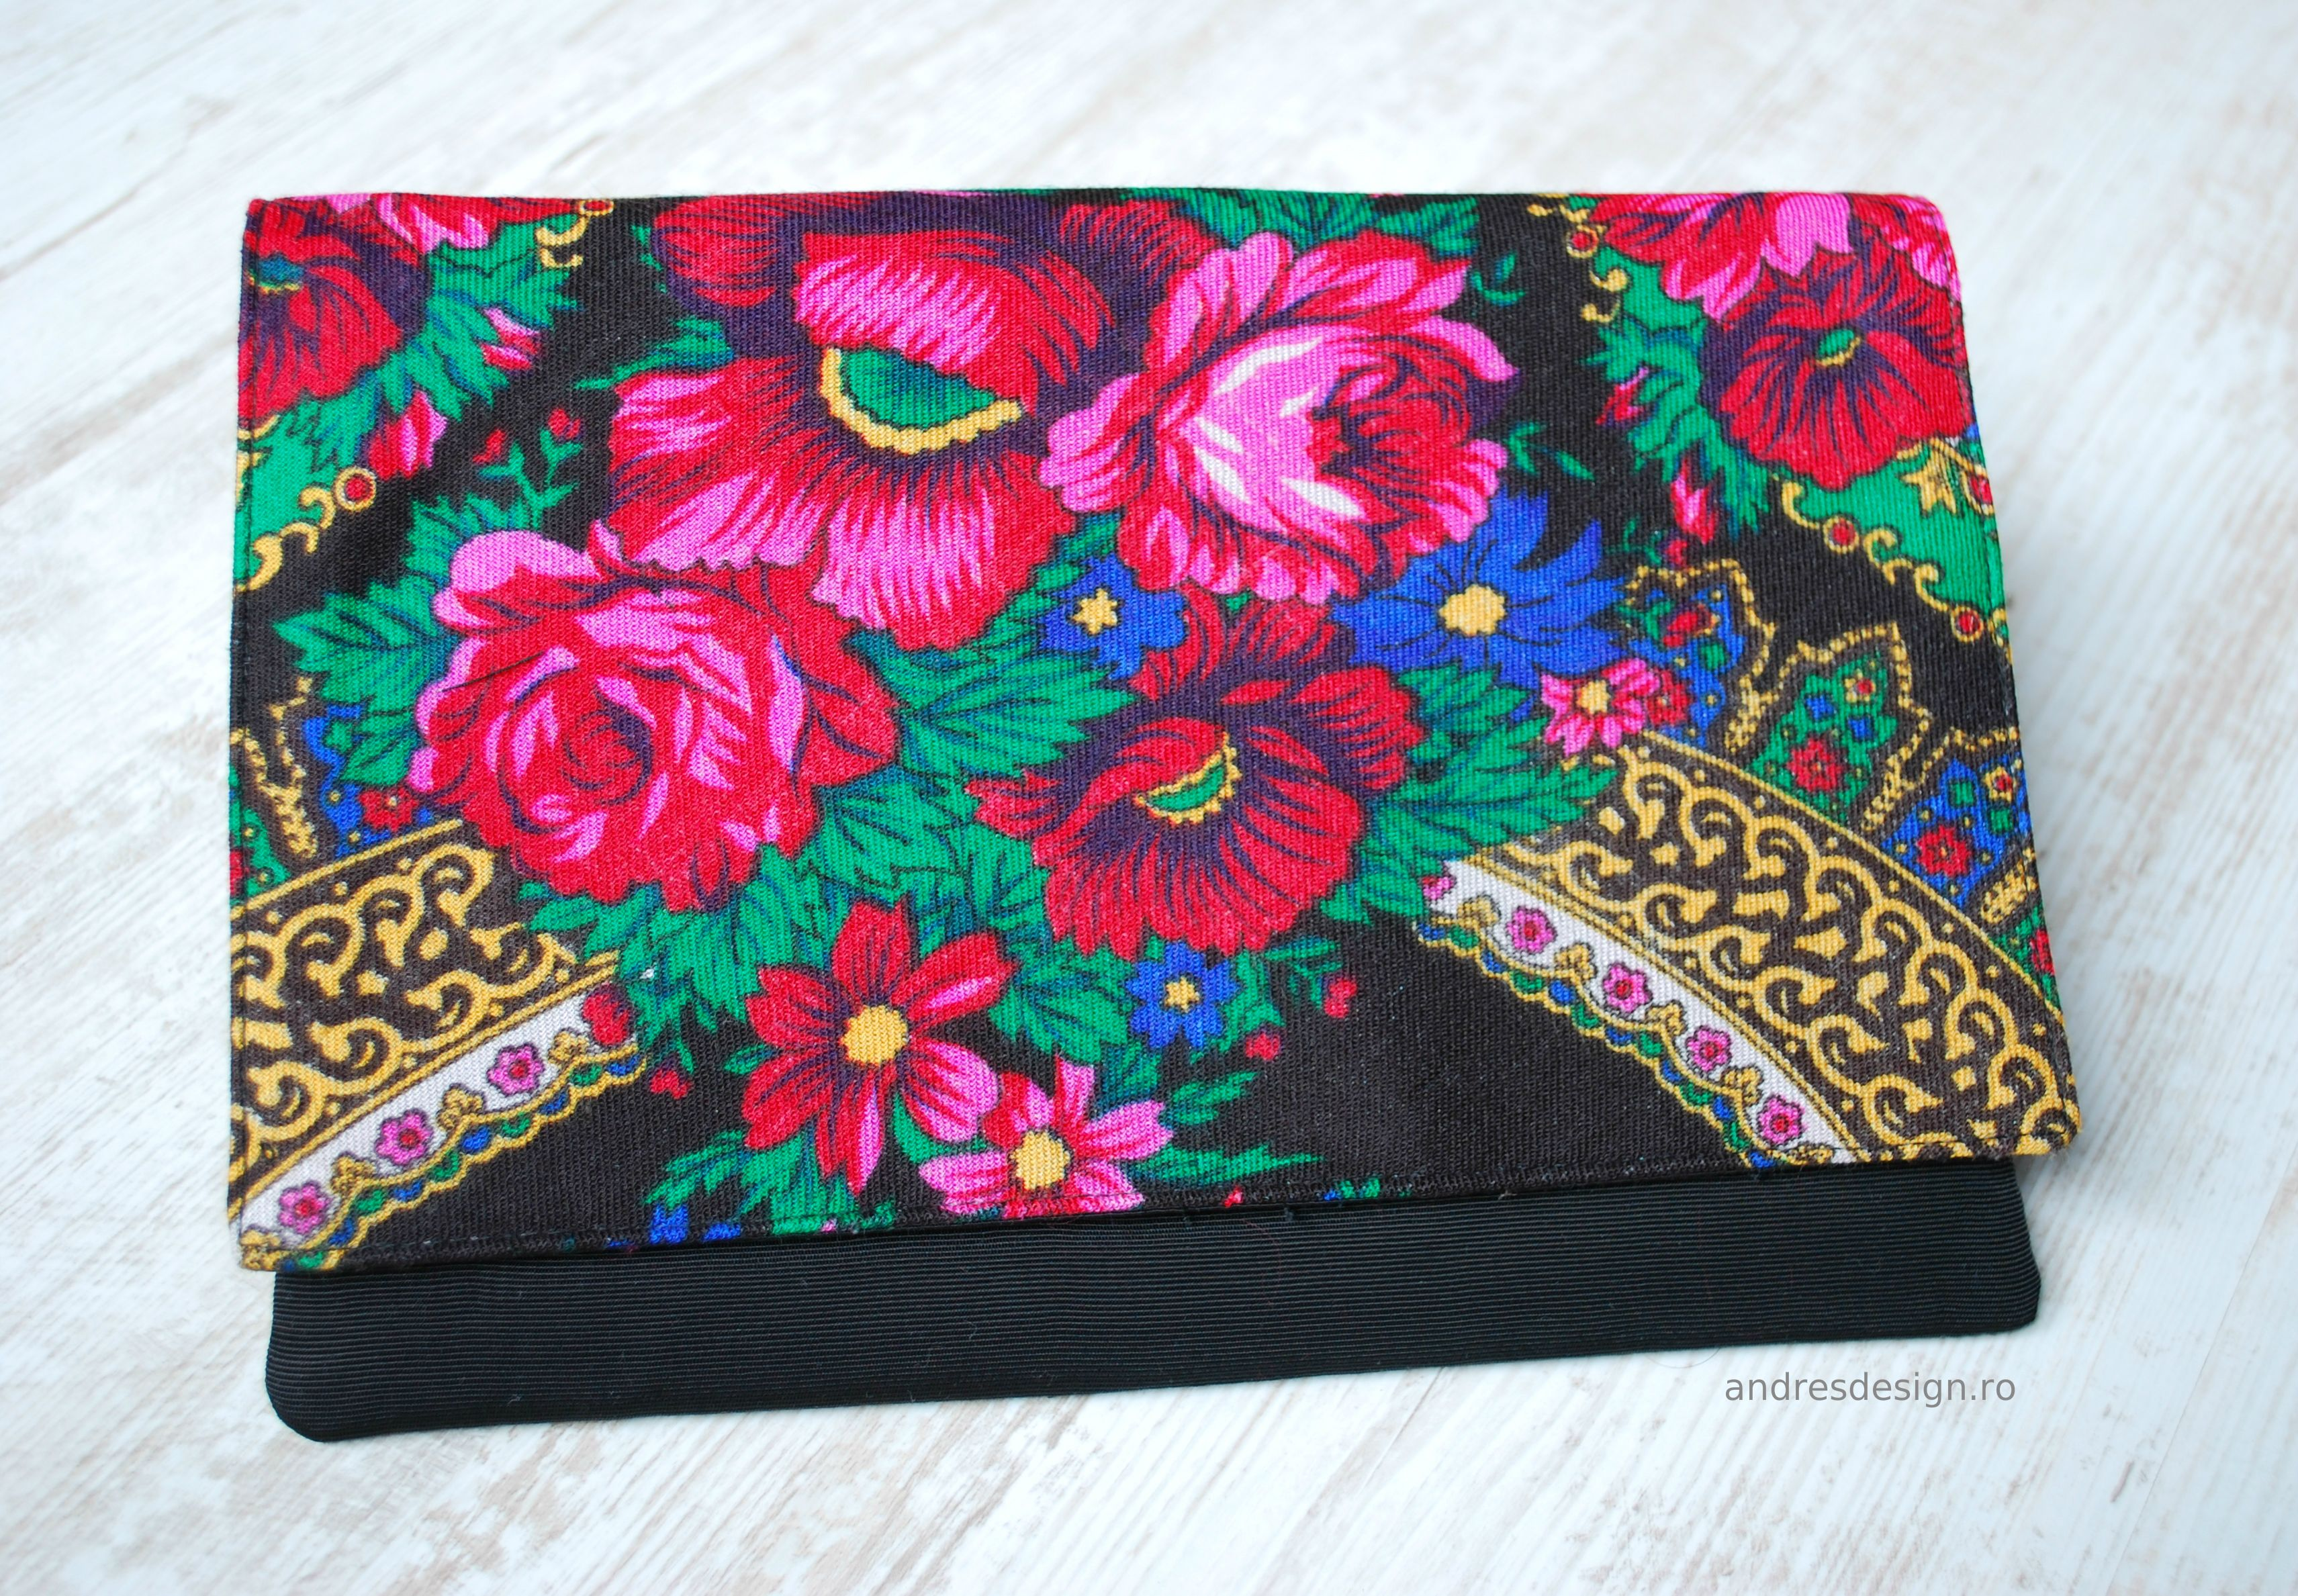 Custom made clutch - gipsy motif  price: 75 lei For orders, email me: contact@andresdesign.ro